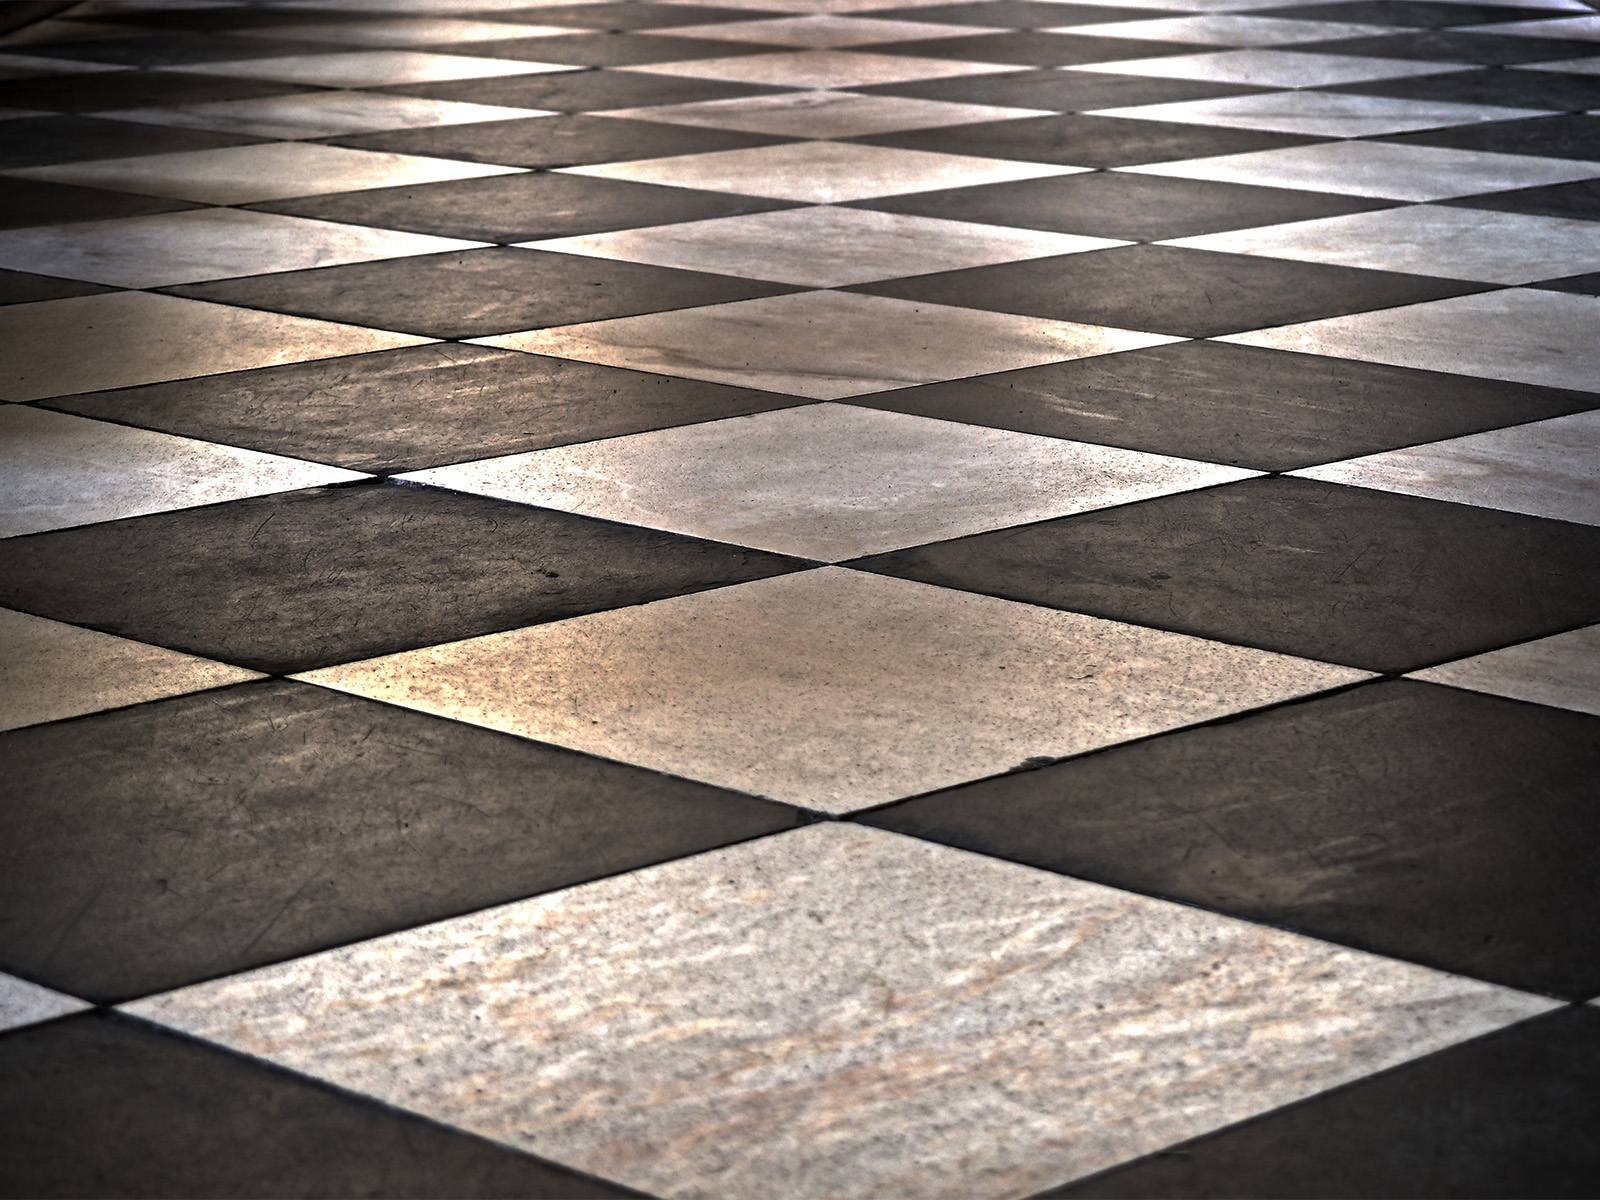 Wall and floor tiling services in London, grouting and re-grouting, surface preparation, ditra matting, tile trims, repair work, grout colours, silicone sealant, marble installs, porcelain and ceramic tiling, external tiling, mosaic tiling